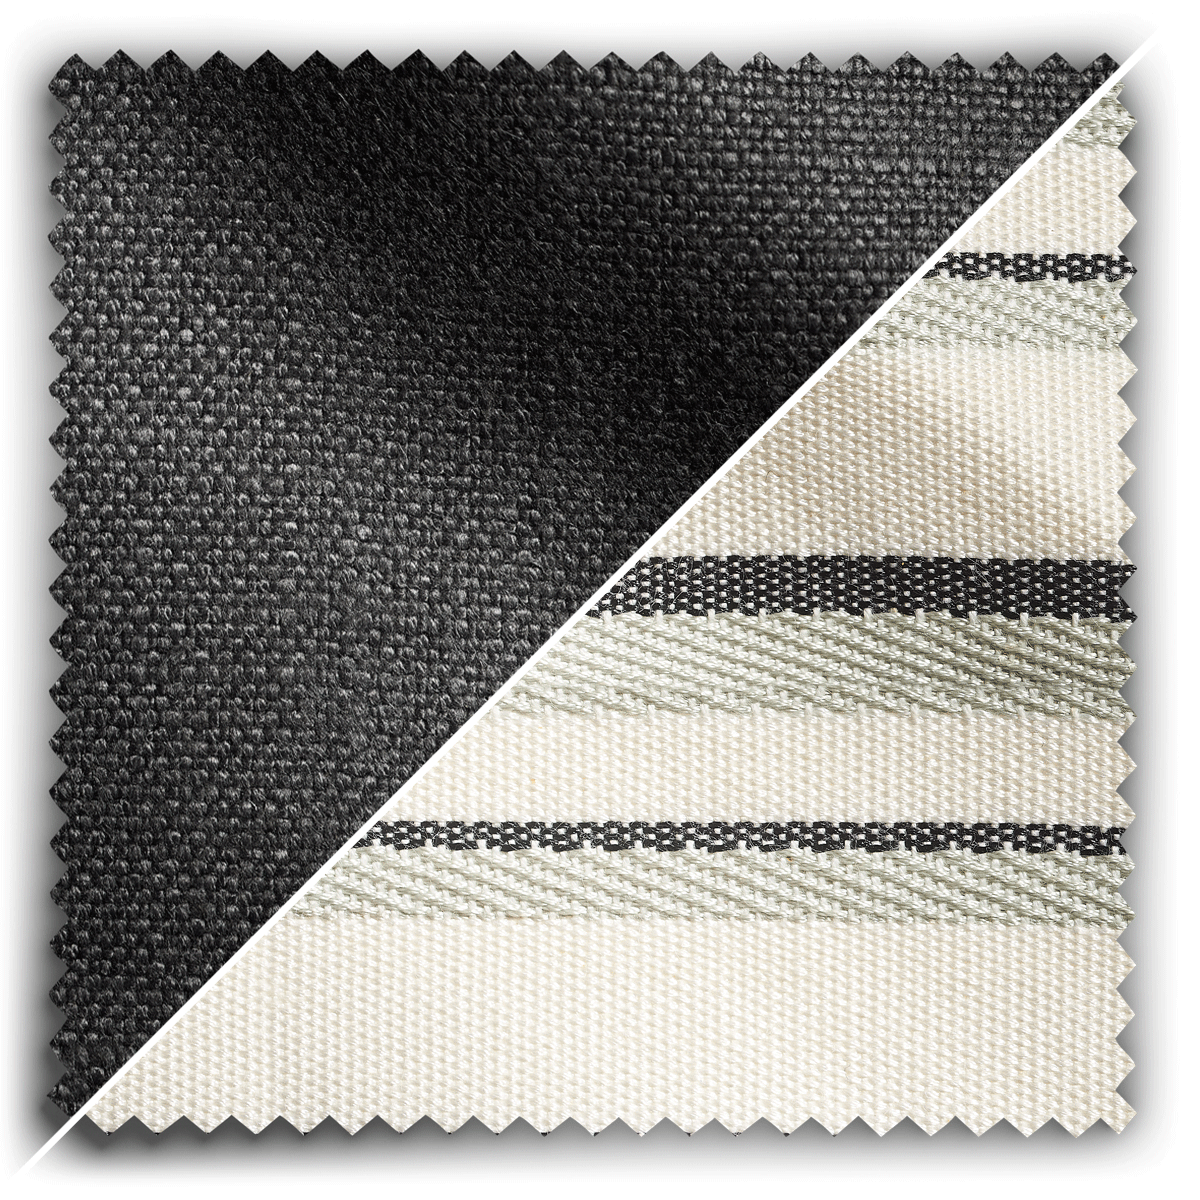 Image of Studio Stripes Charcoal Linen fabric